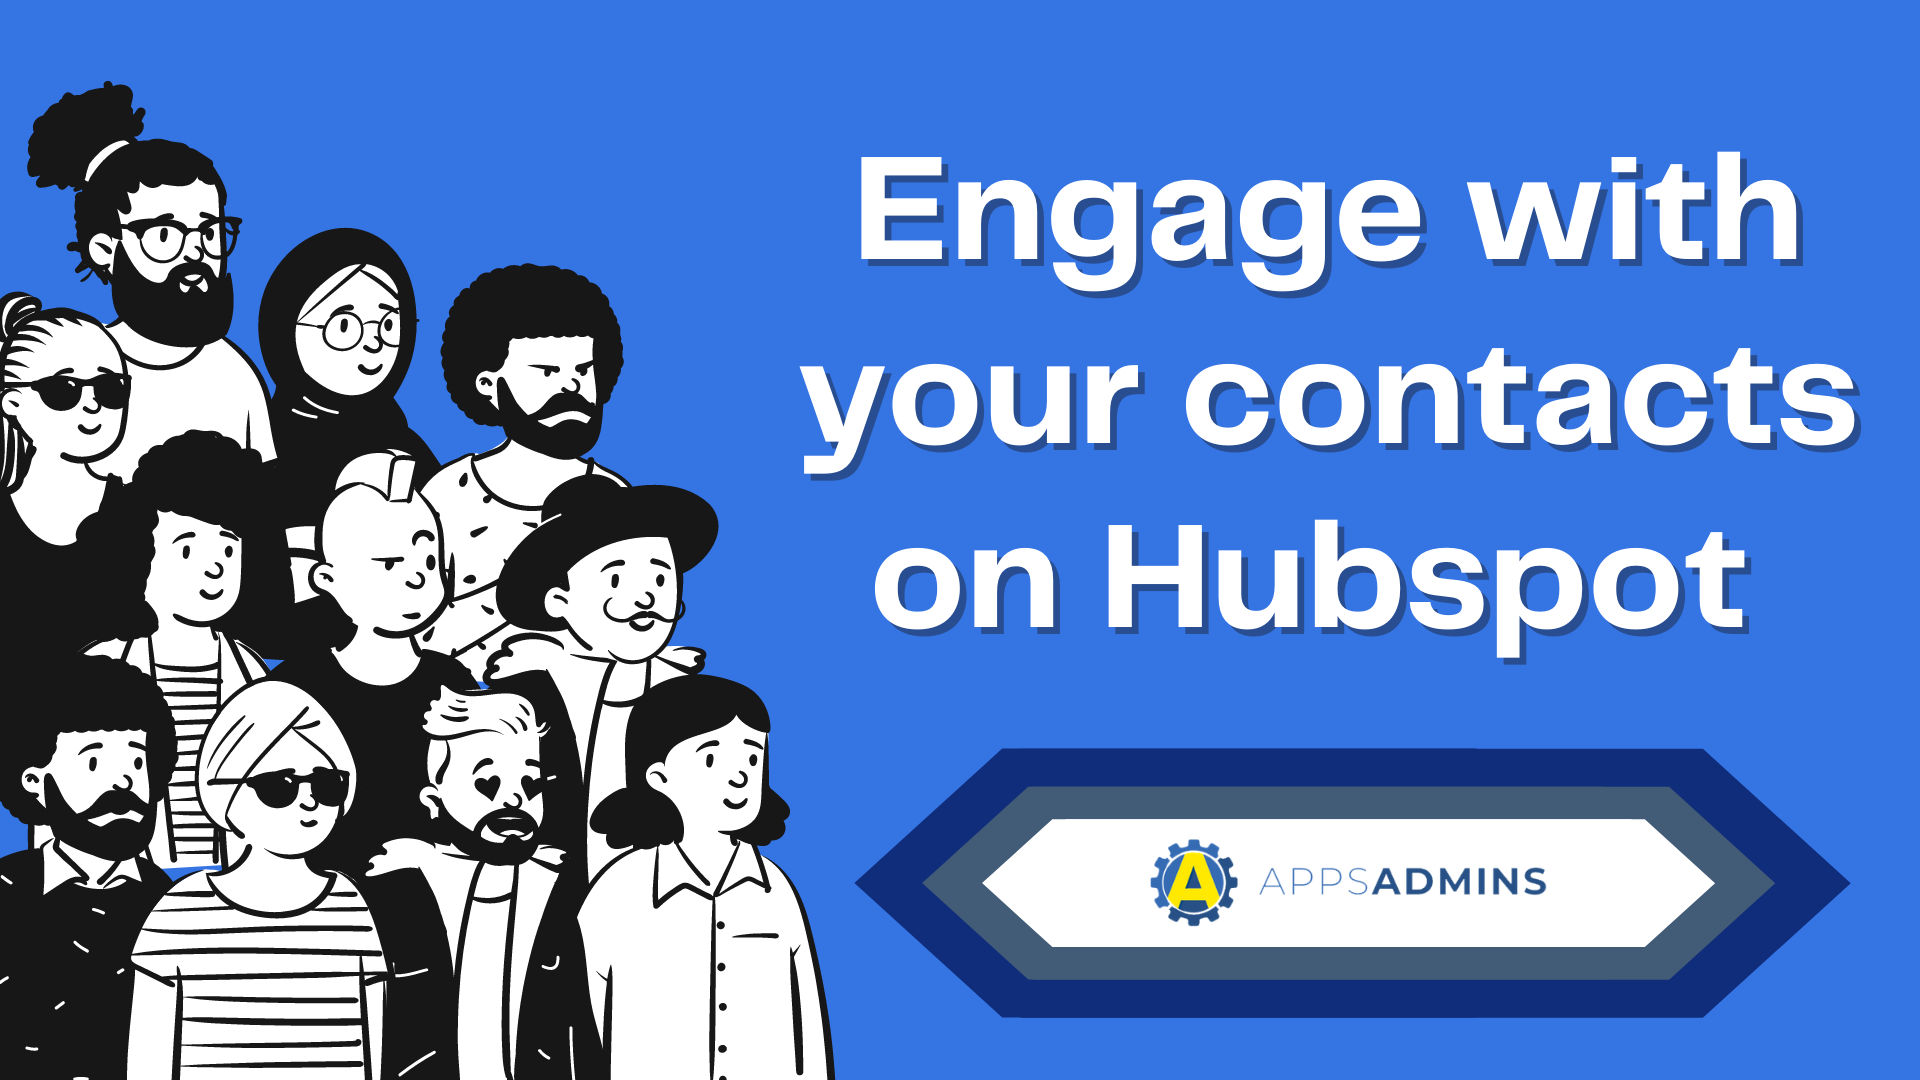 Engage with your contacts on Hubspot